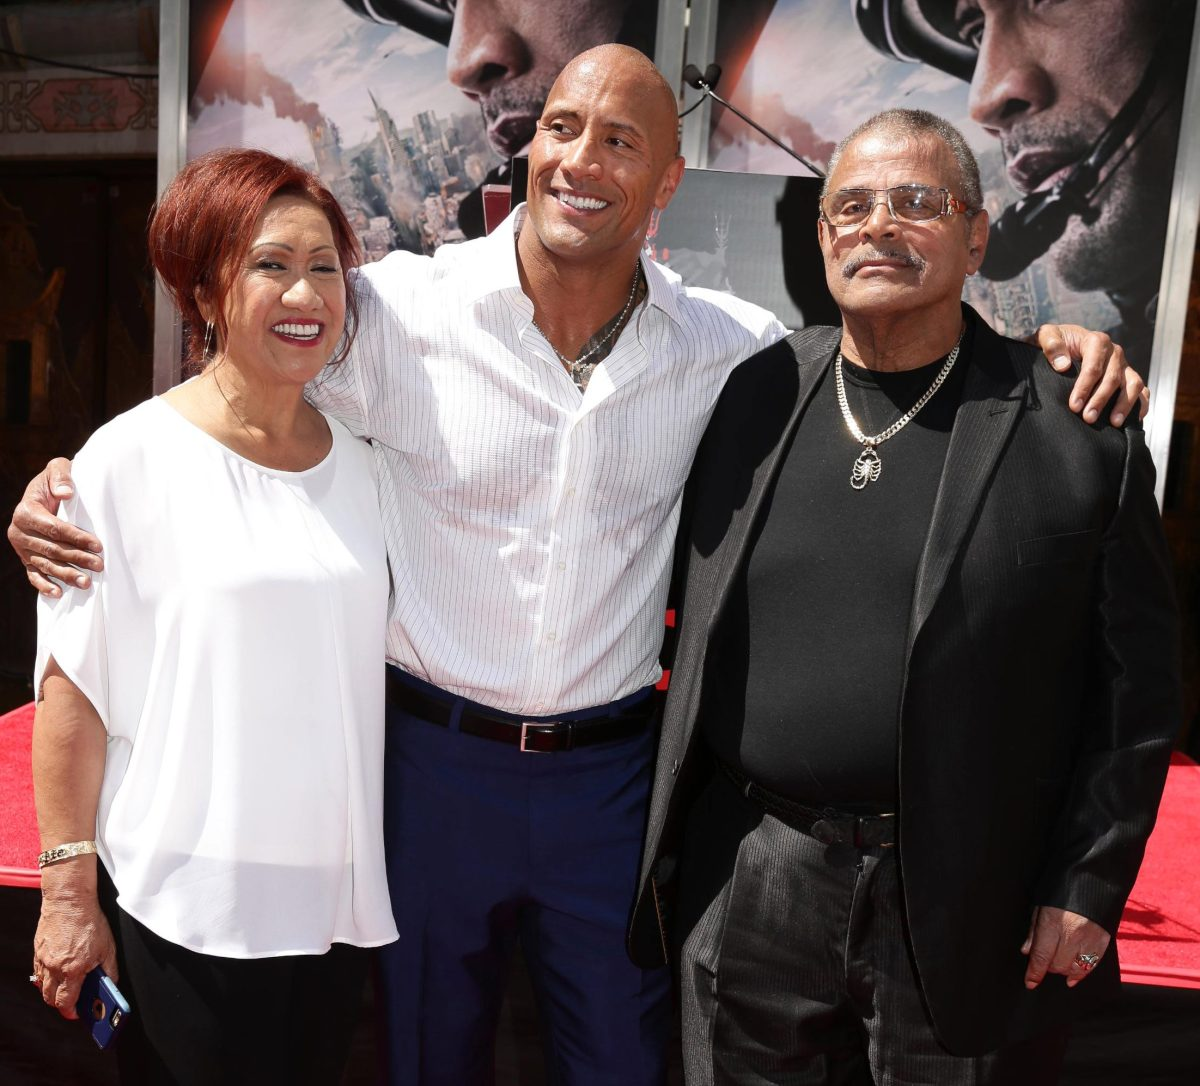 The Rock (center) with his mother Ata and his father Rocky, became one of the greatest fighters in history and a great Hollywood star